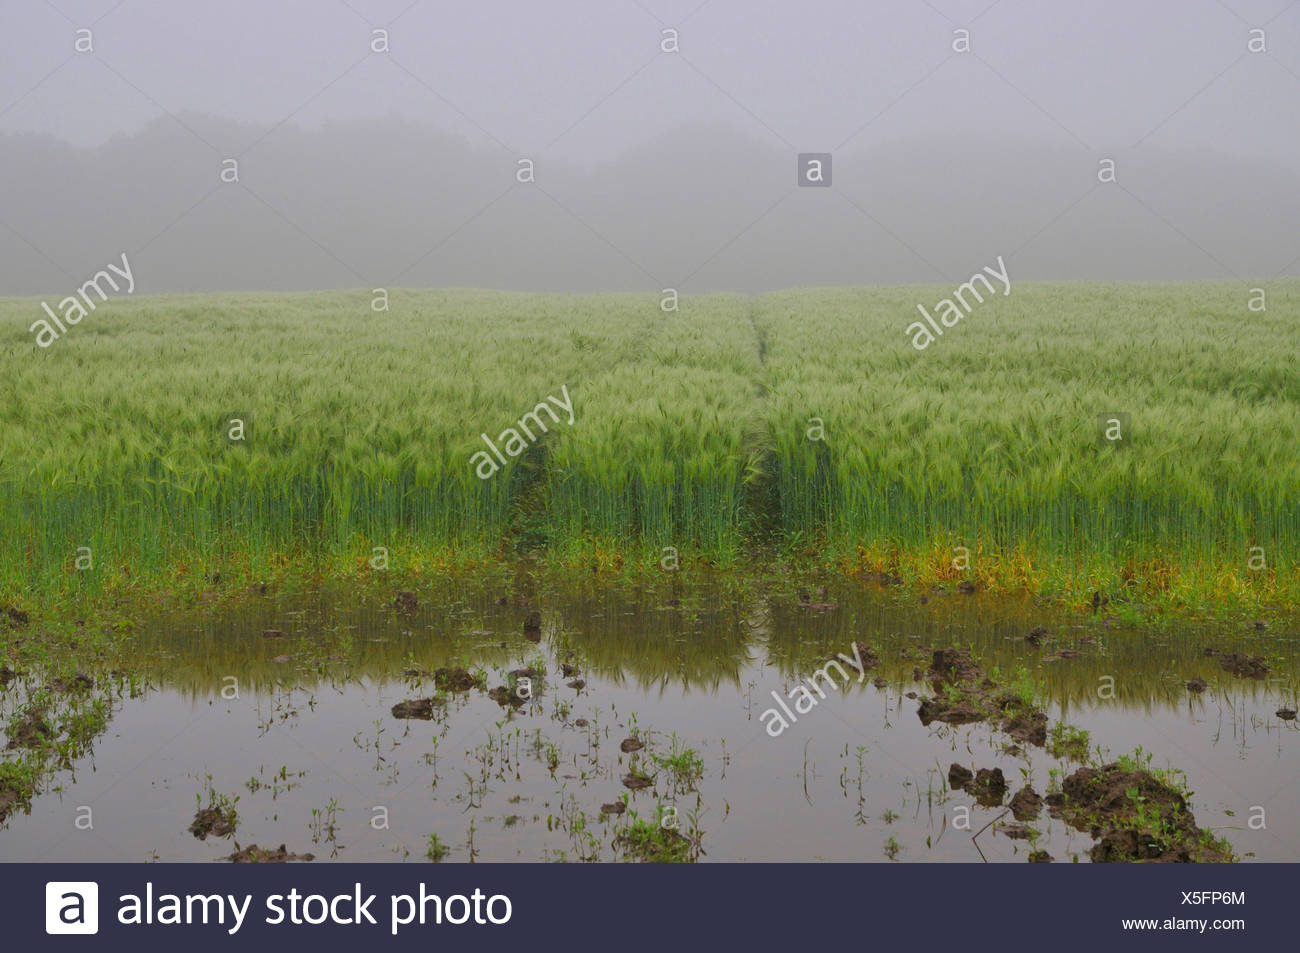 barley (Hordeum vulgare), puddle after heavy rain on a barley field, Germany, North Rhine-Westphalia, Ruhr Area, Castrop-Rauxel Stock Photo